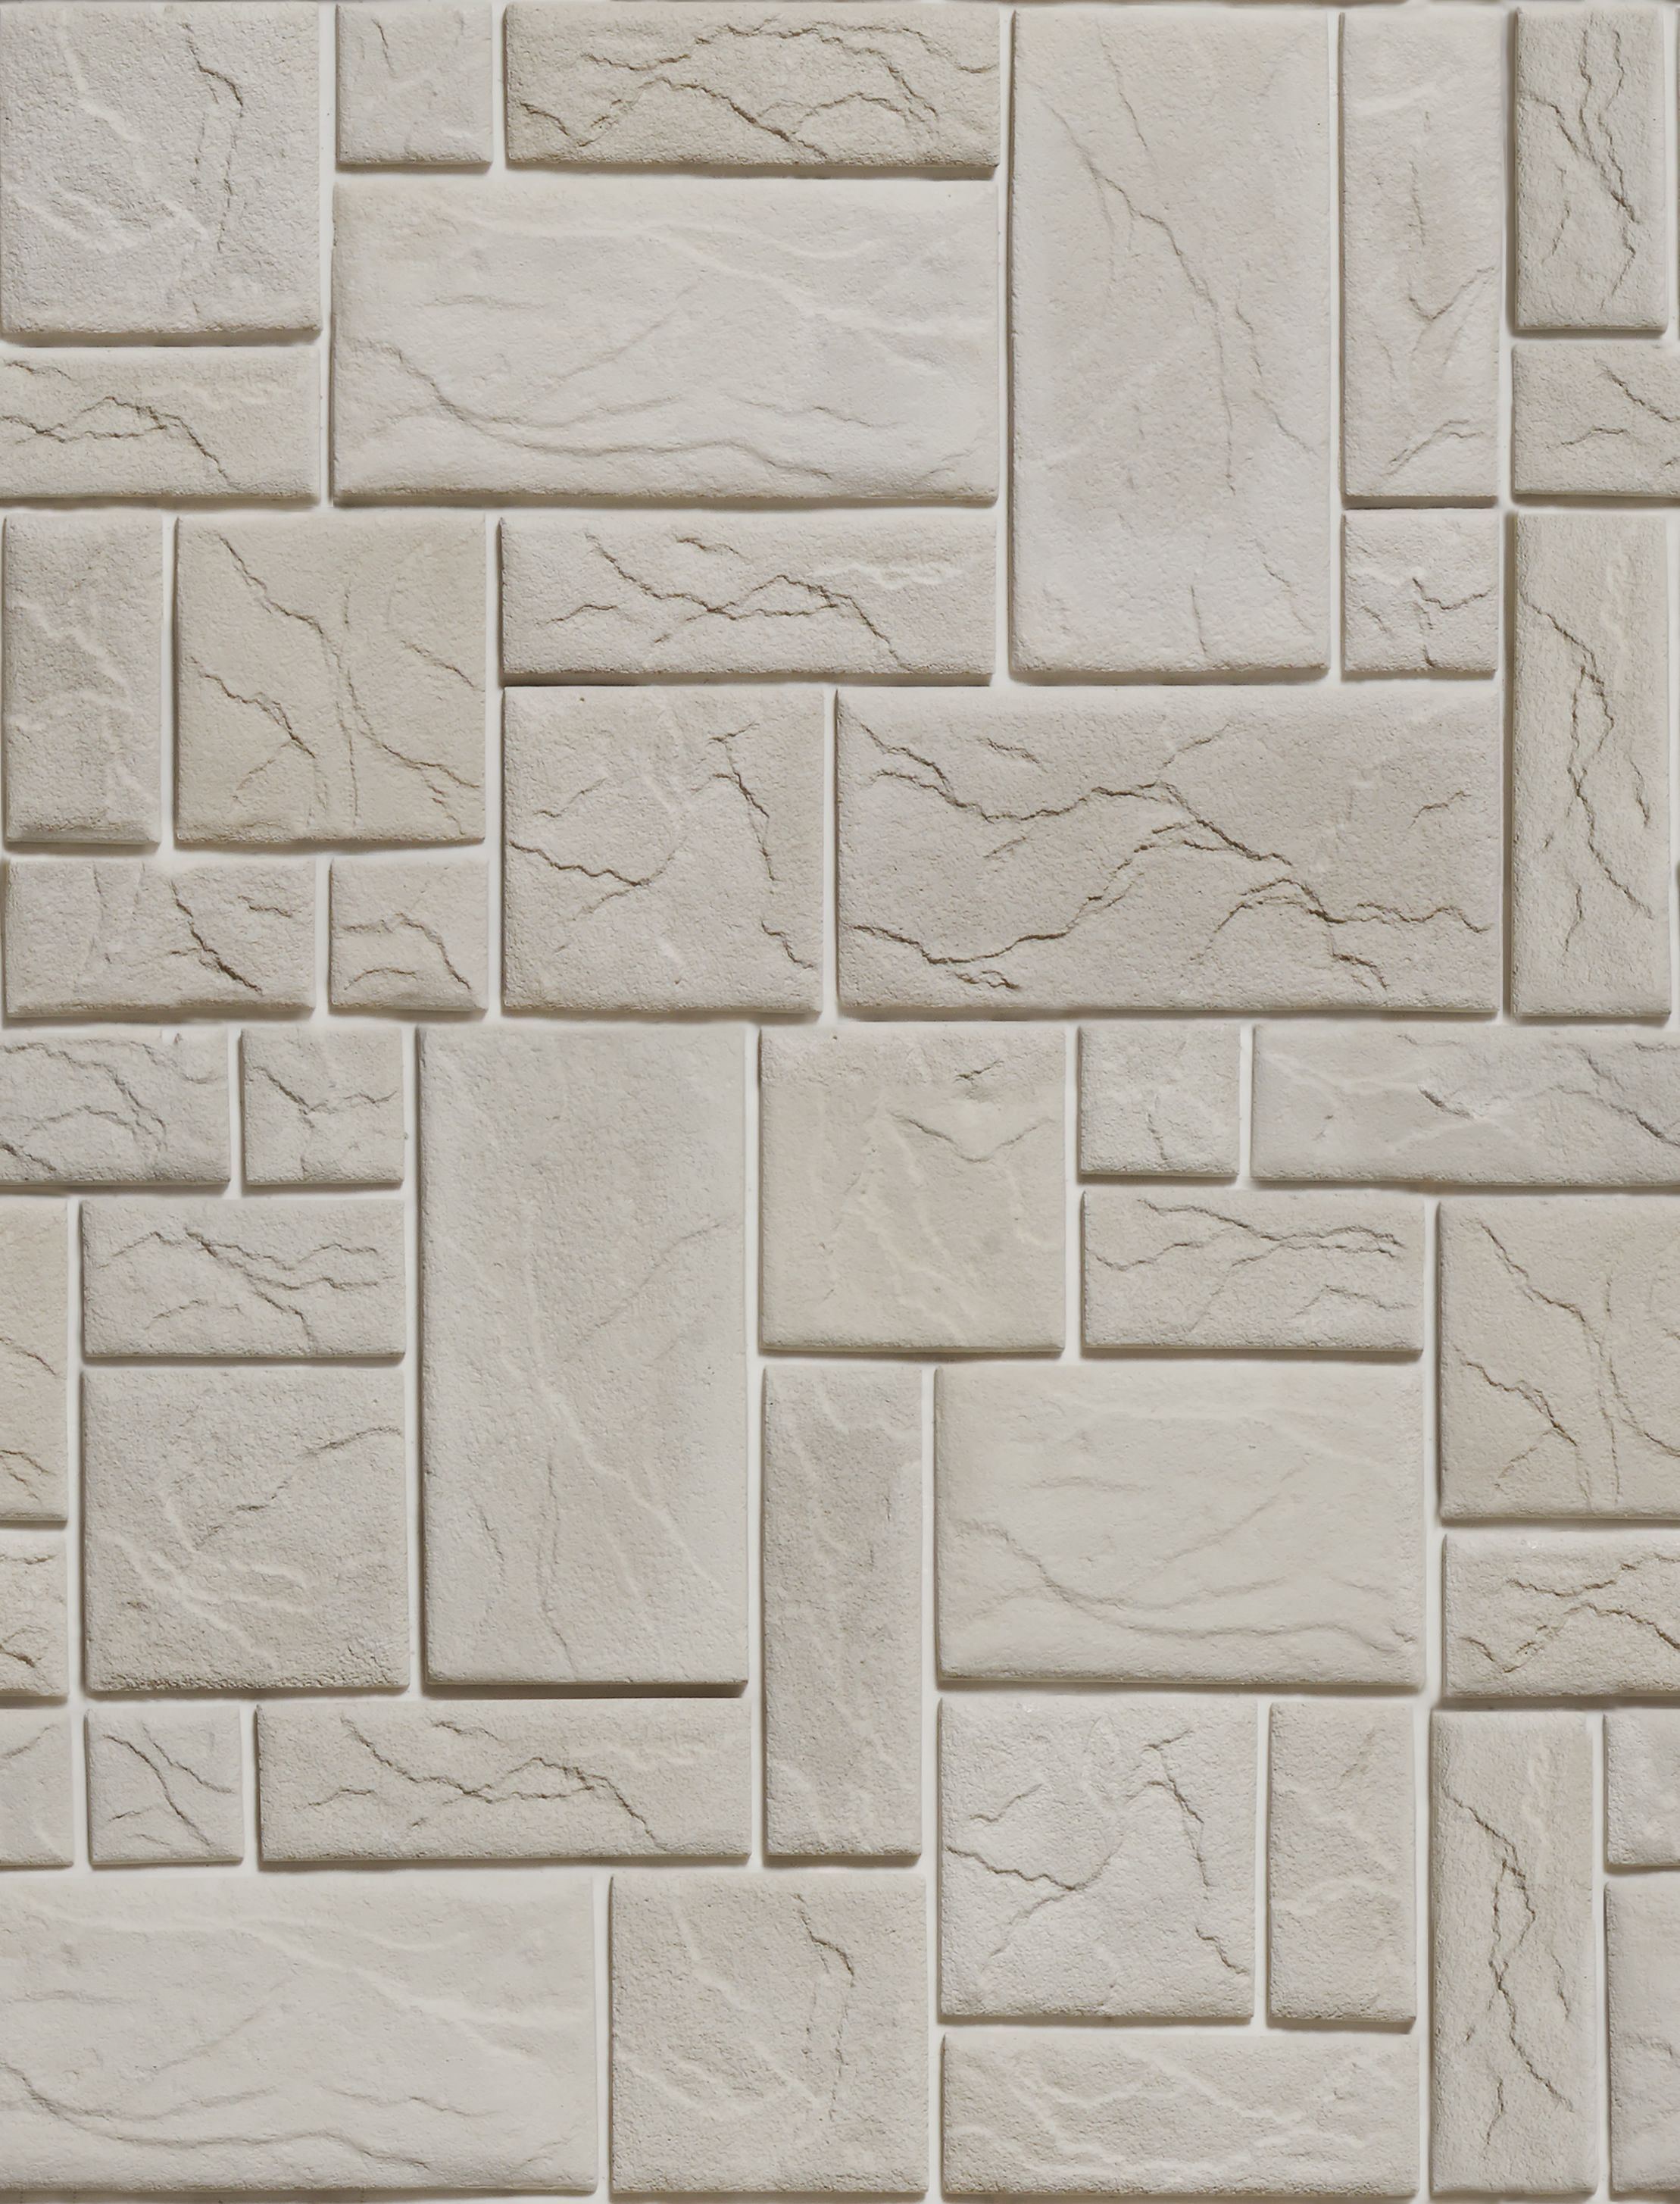 stone tile texture. Awesome Tile Texture Ideas for Your Wall and Floor stone texture935 jpg  2218 2909 textures Pinterest